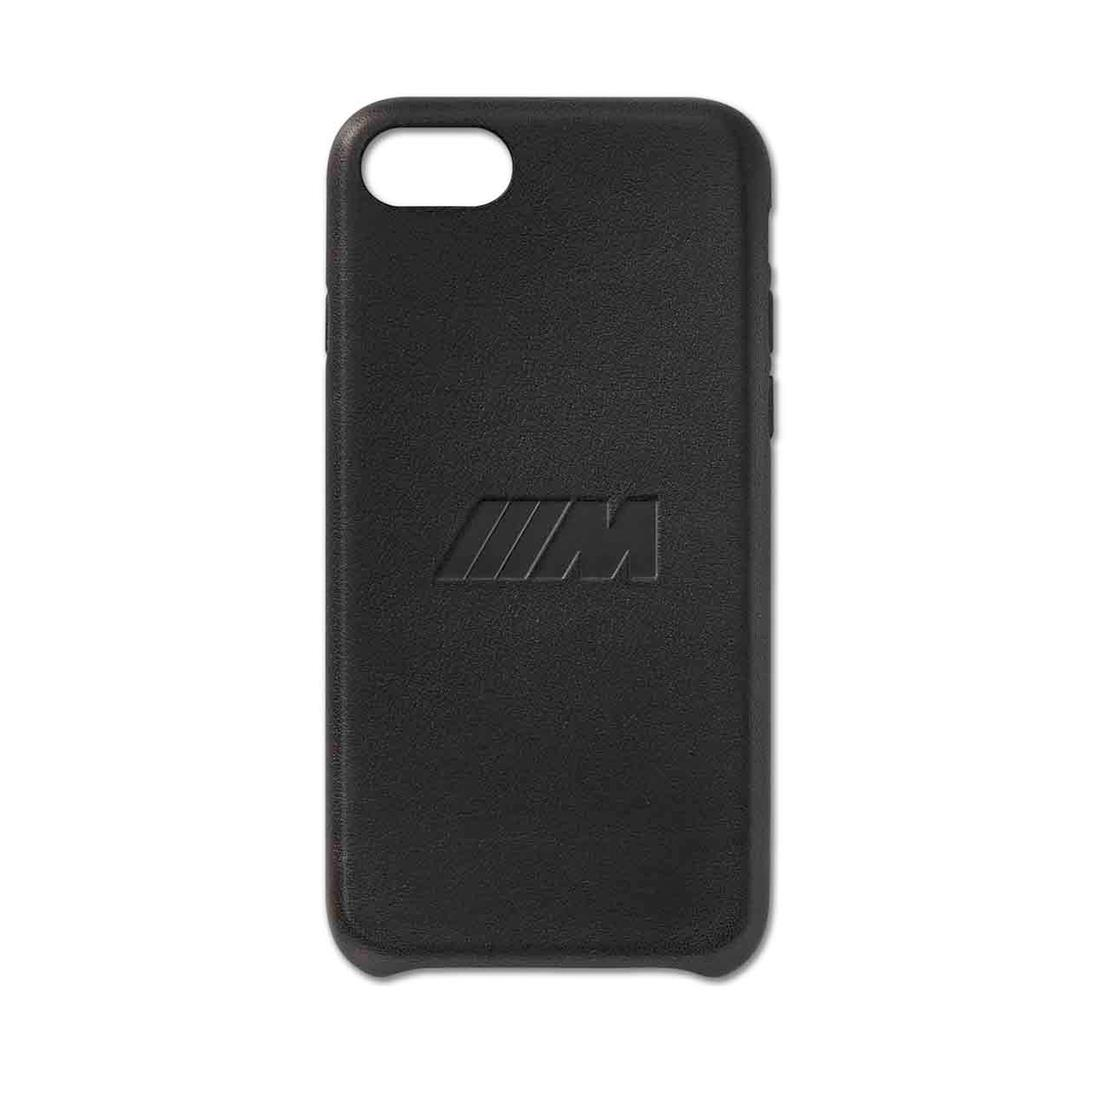 uk availability eed3c ef401 ShopBMWUSA.com: BMW M IPHONE X LEATHER CASE